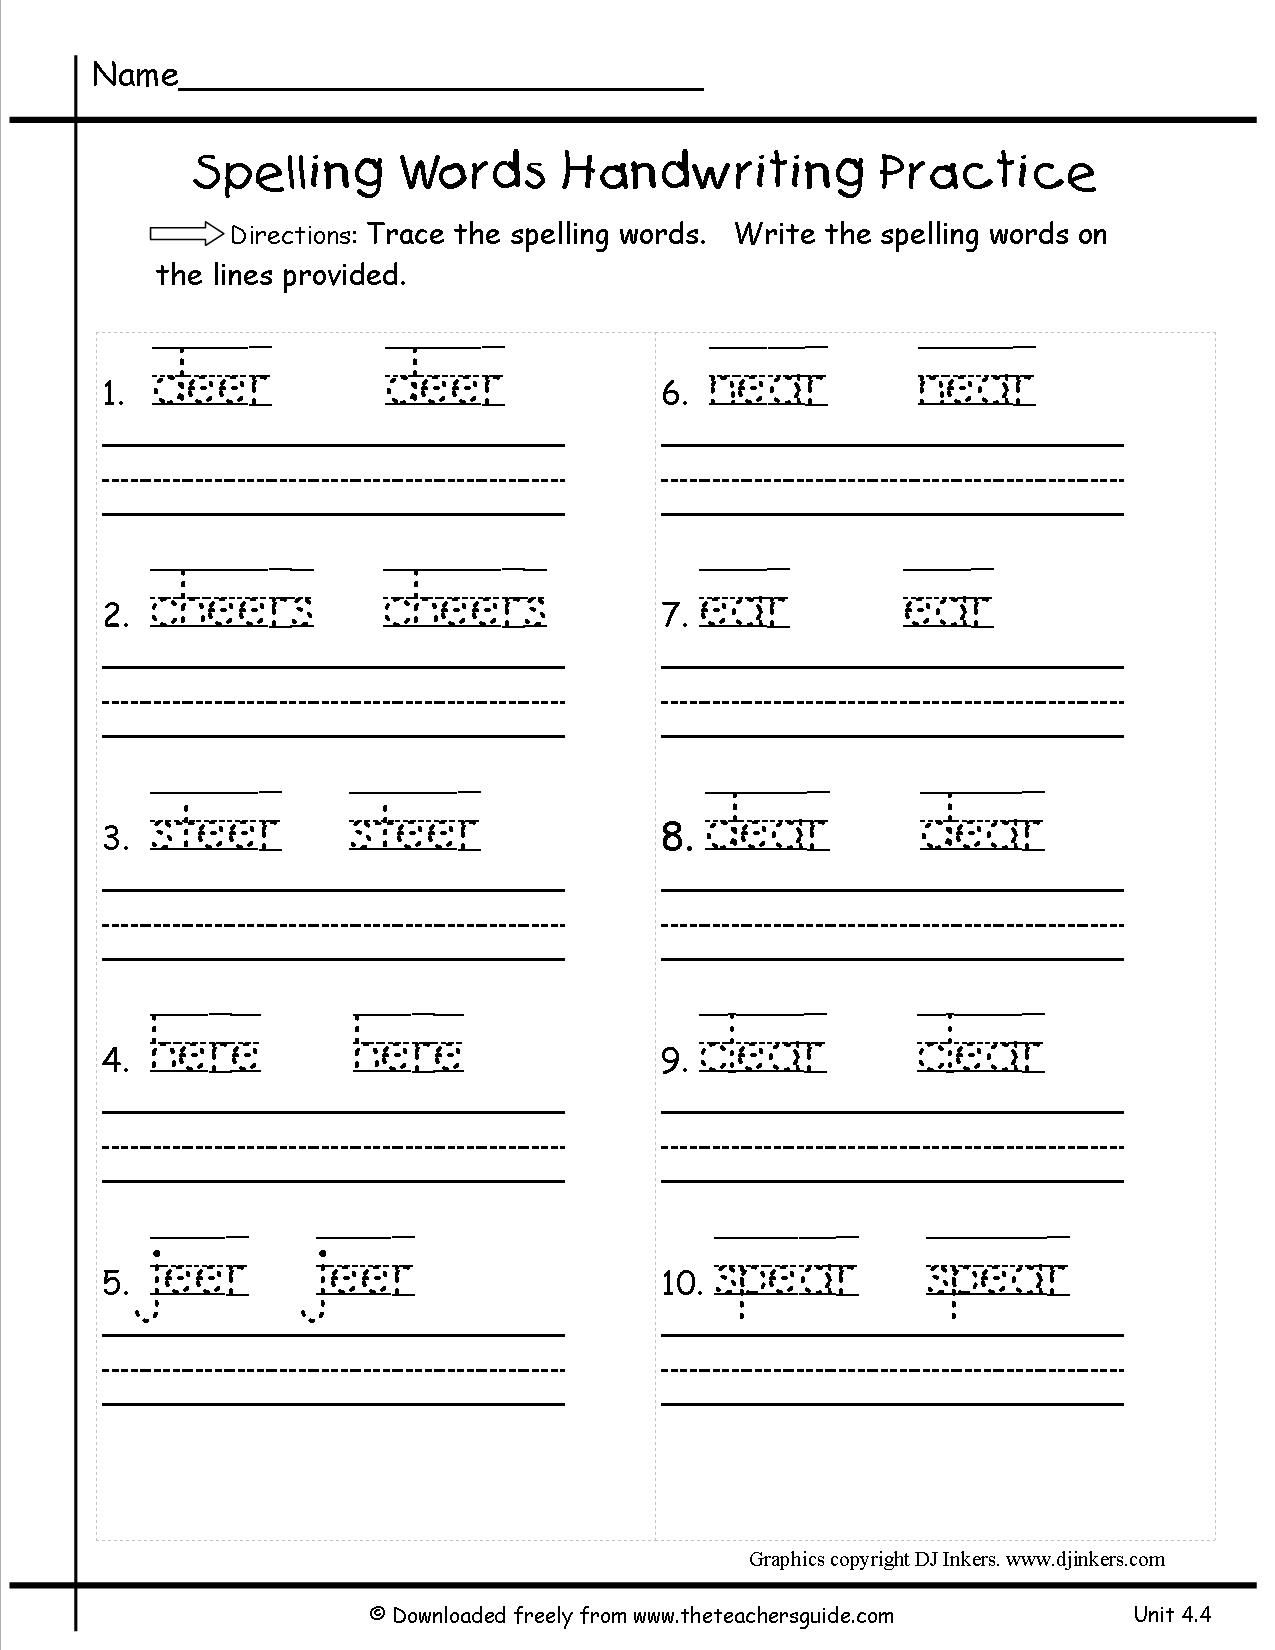 Free 1st Grade Spelling Worksheets Pictures